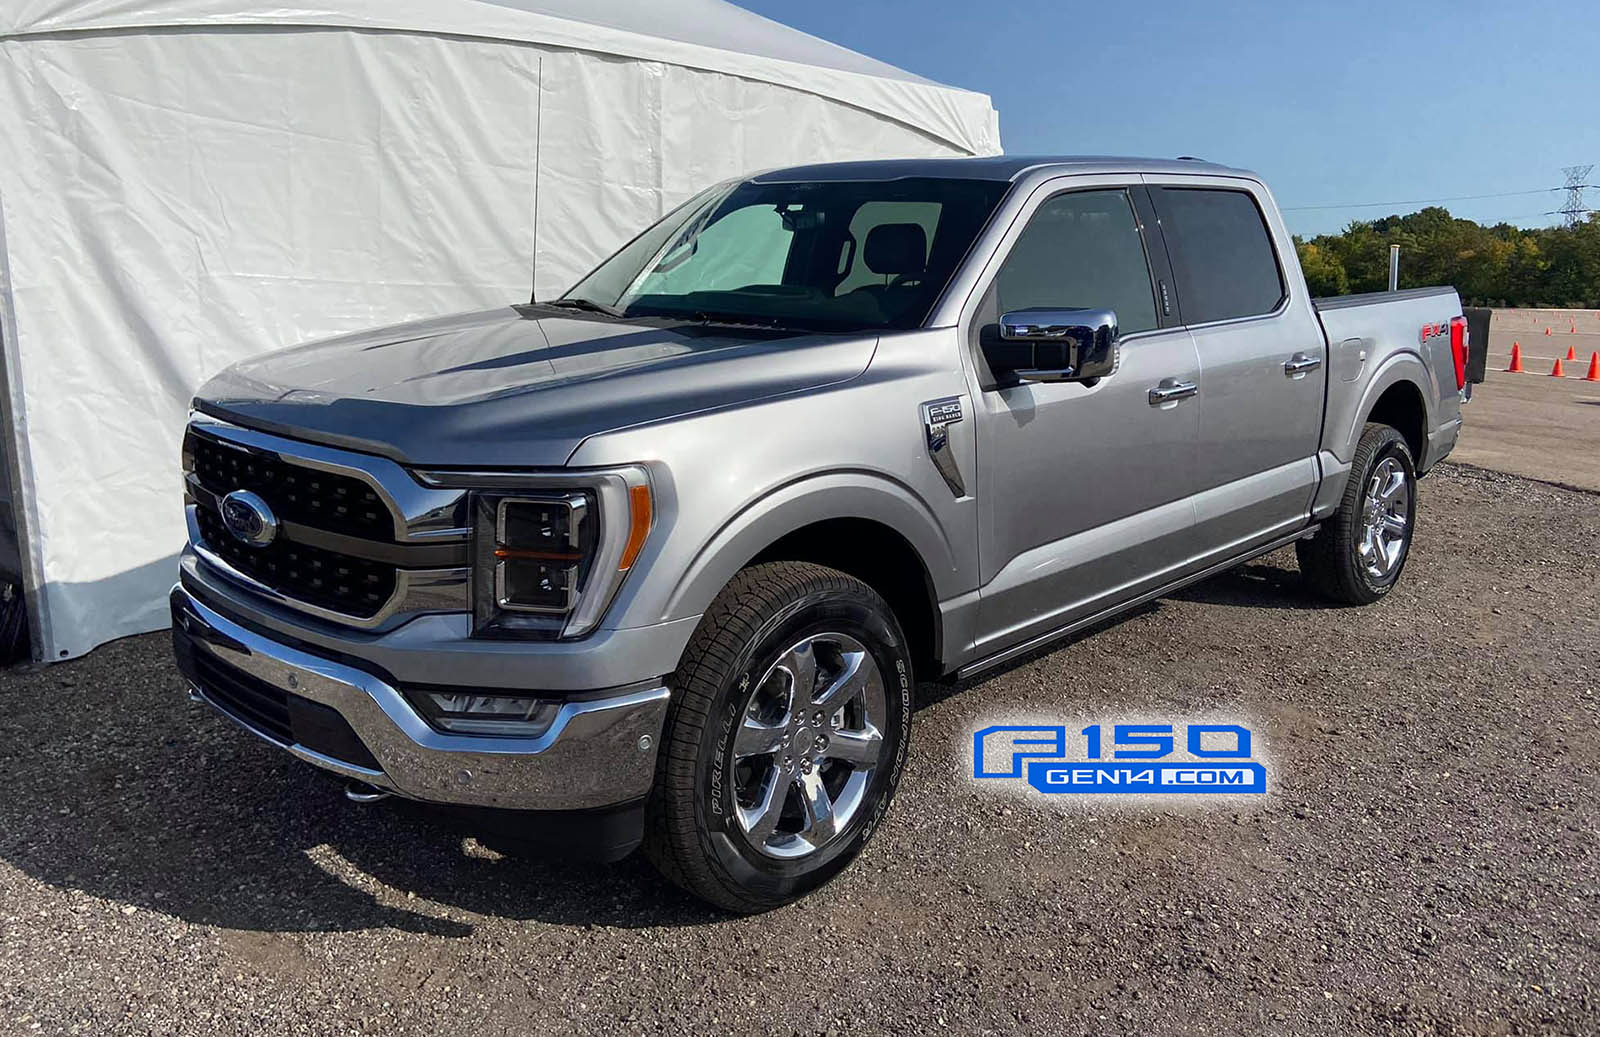 Iconic Silver King Ranch Chrome 2021 F-150 Front Quarter.jpg